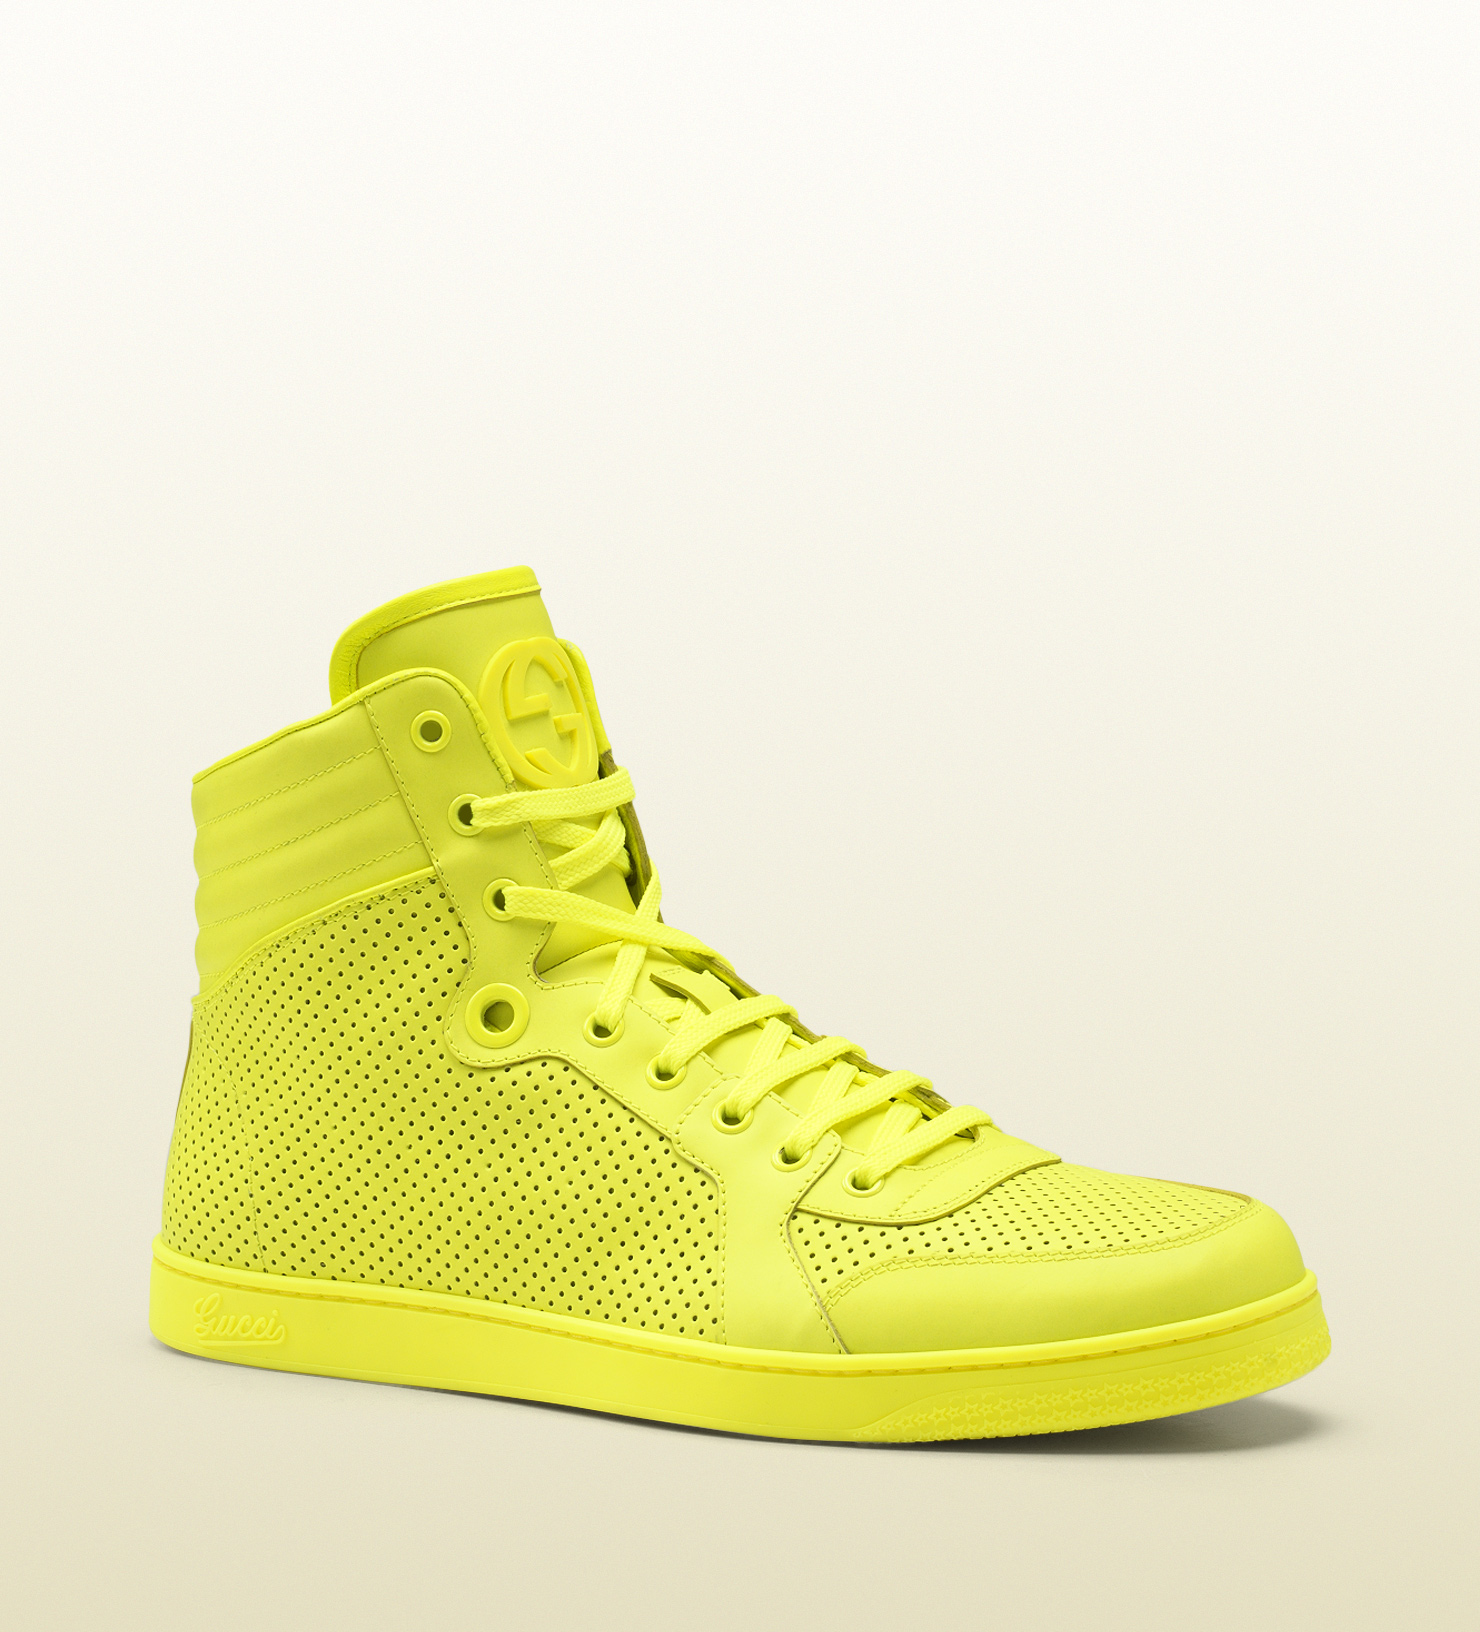 dd5144f8ab9 Lyst - Gucci Neon Yellow Leather Hightop Sneaker in Yellow for Men